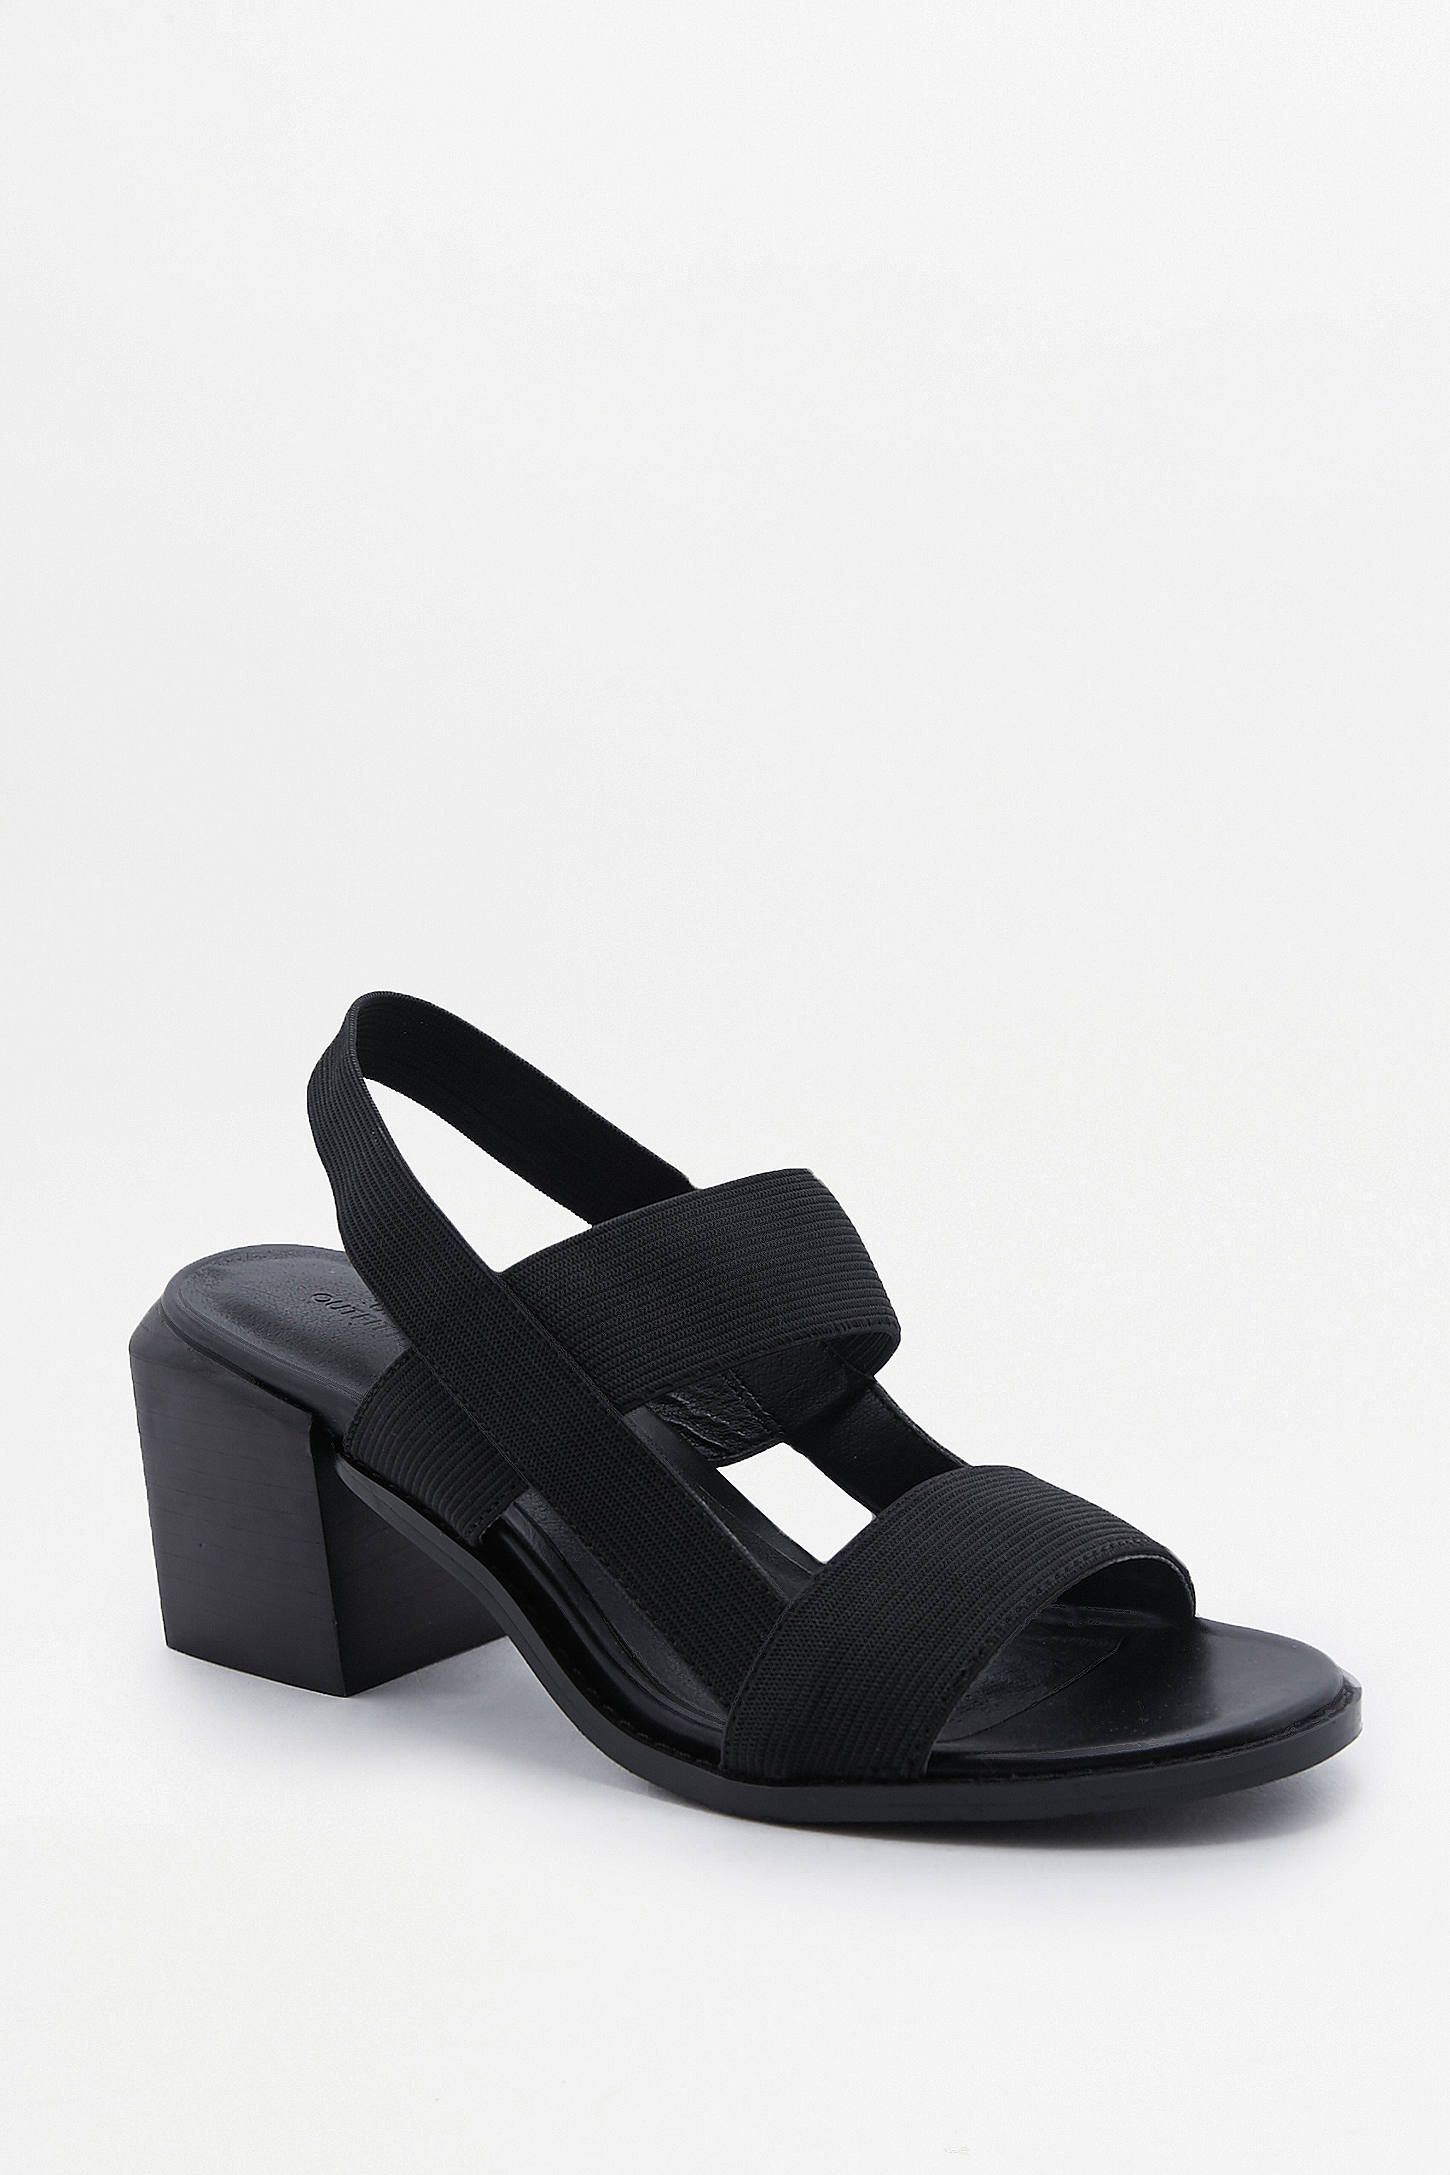 Shop the Elastic Slingback Heels and more Urban Outfitters at Urban Outfitters. Read customer reviews, discover product details and more.